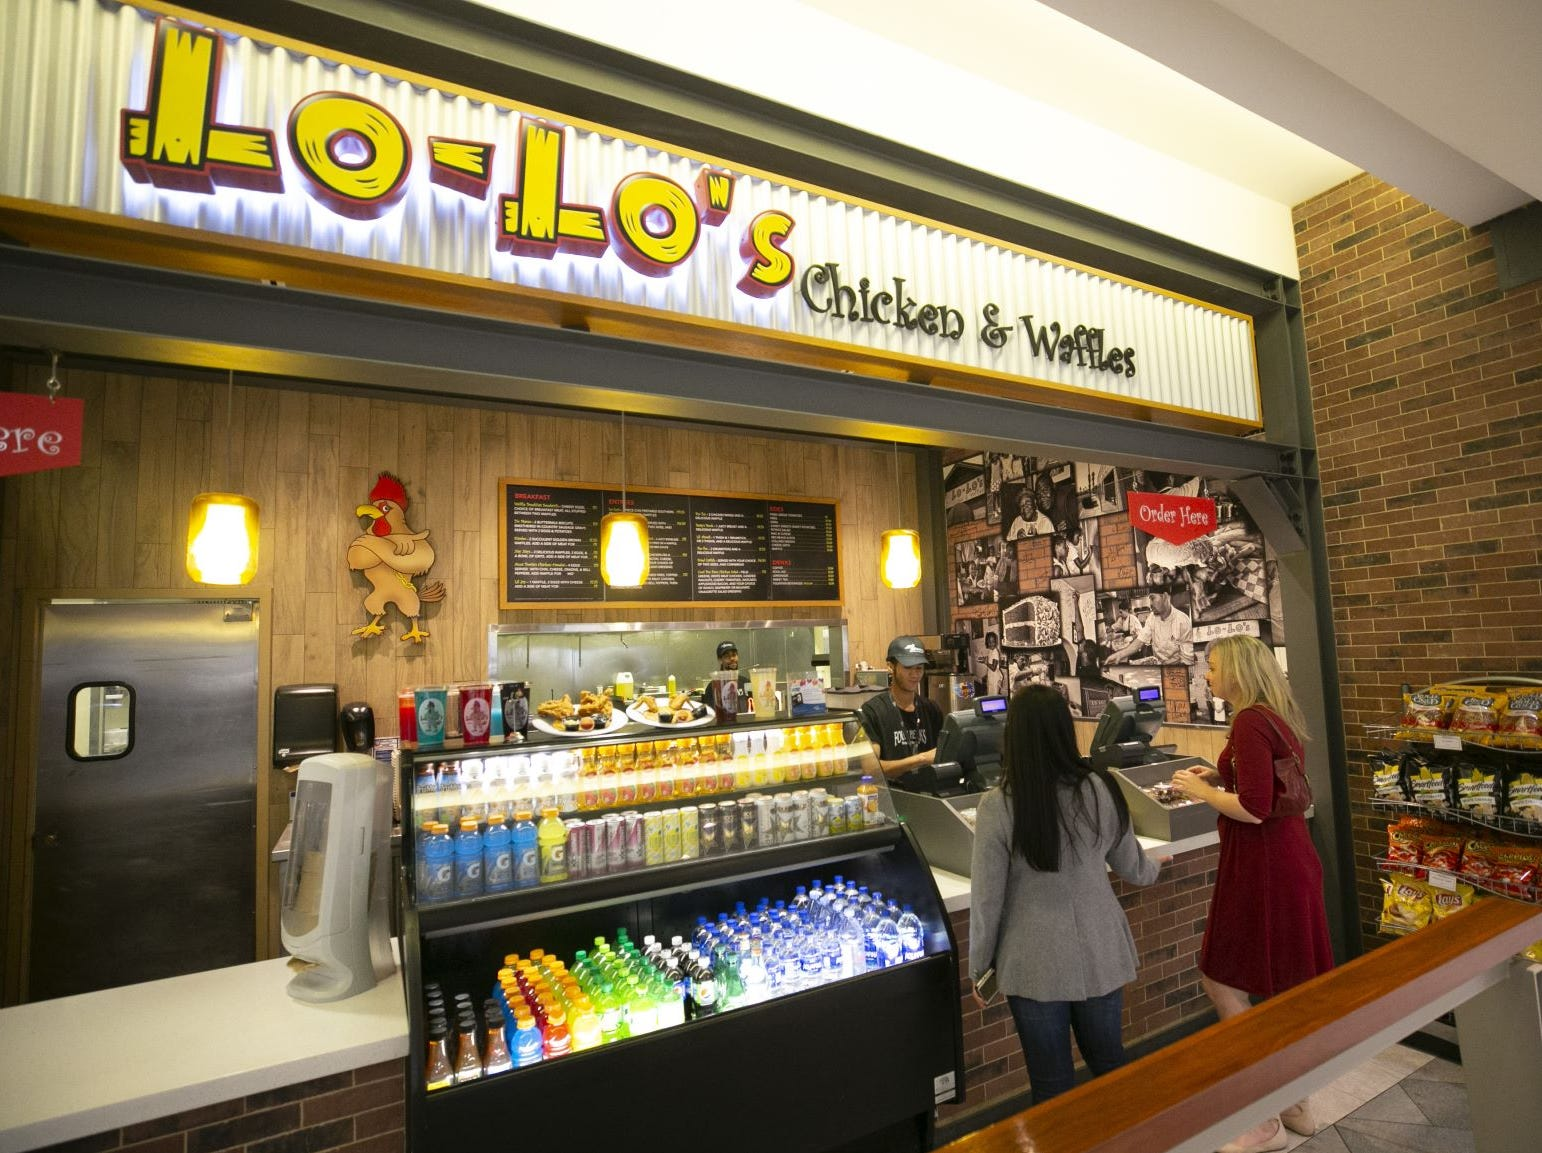 Lo-Lo's Chicken & Waffles in lobby of the third floor of Terminal Four of Phoenix Sky Harbor International Airport on Tuesday, November 13, 2018.